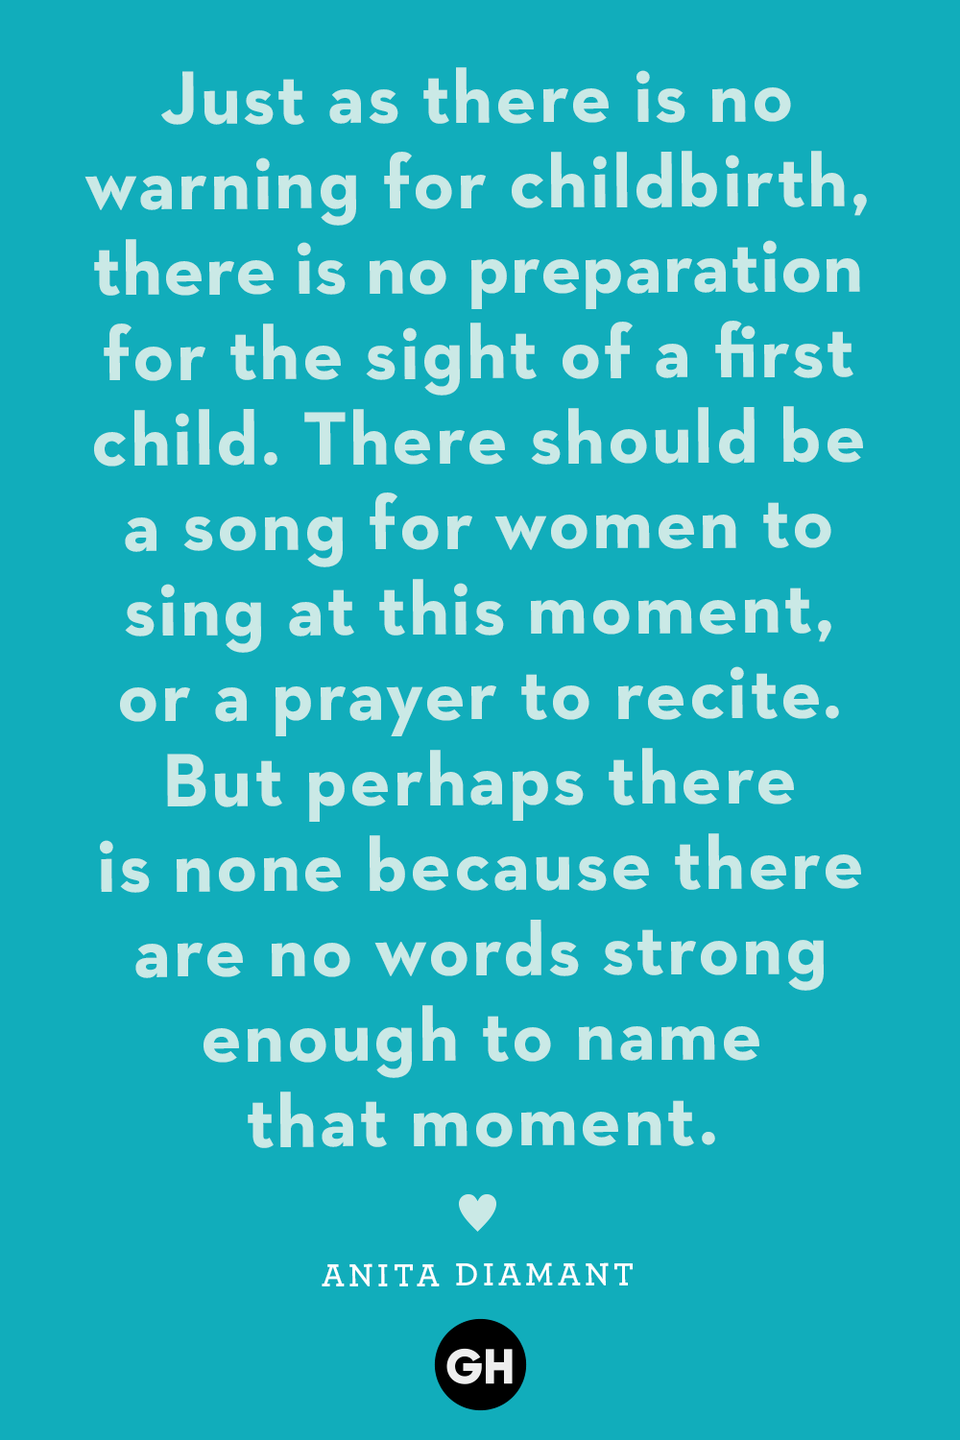 <p>Just as there is no warning for childbirth, there is no preparation for the sight of a first child. There should be a song for women to sing at this moment or a prayer to recite. But perhaps there is none because there are no words strong enough to name that moment.</p>